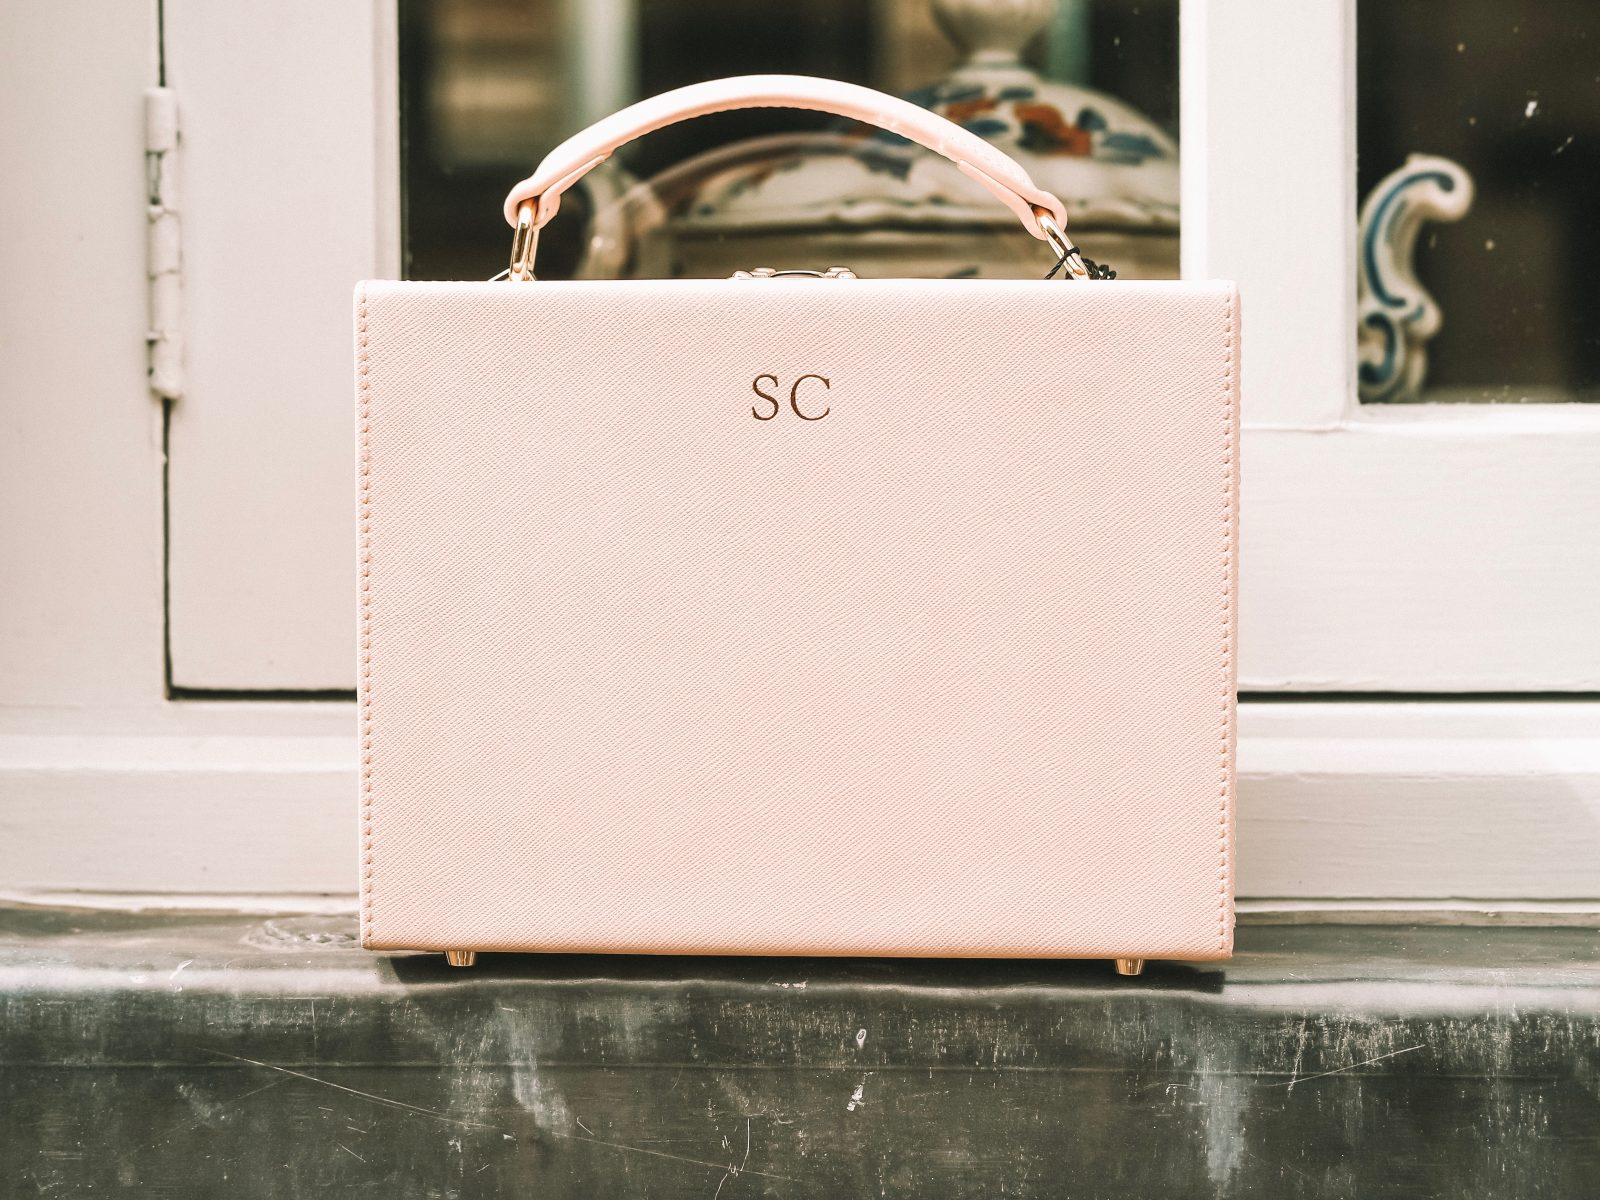 The Daily Edited Box Bag - Blush Personalised Leather Bag